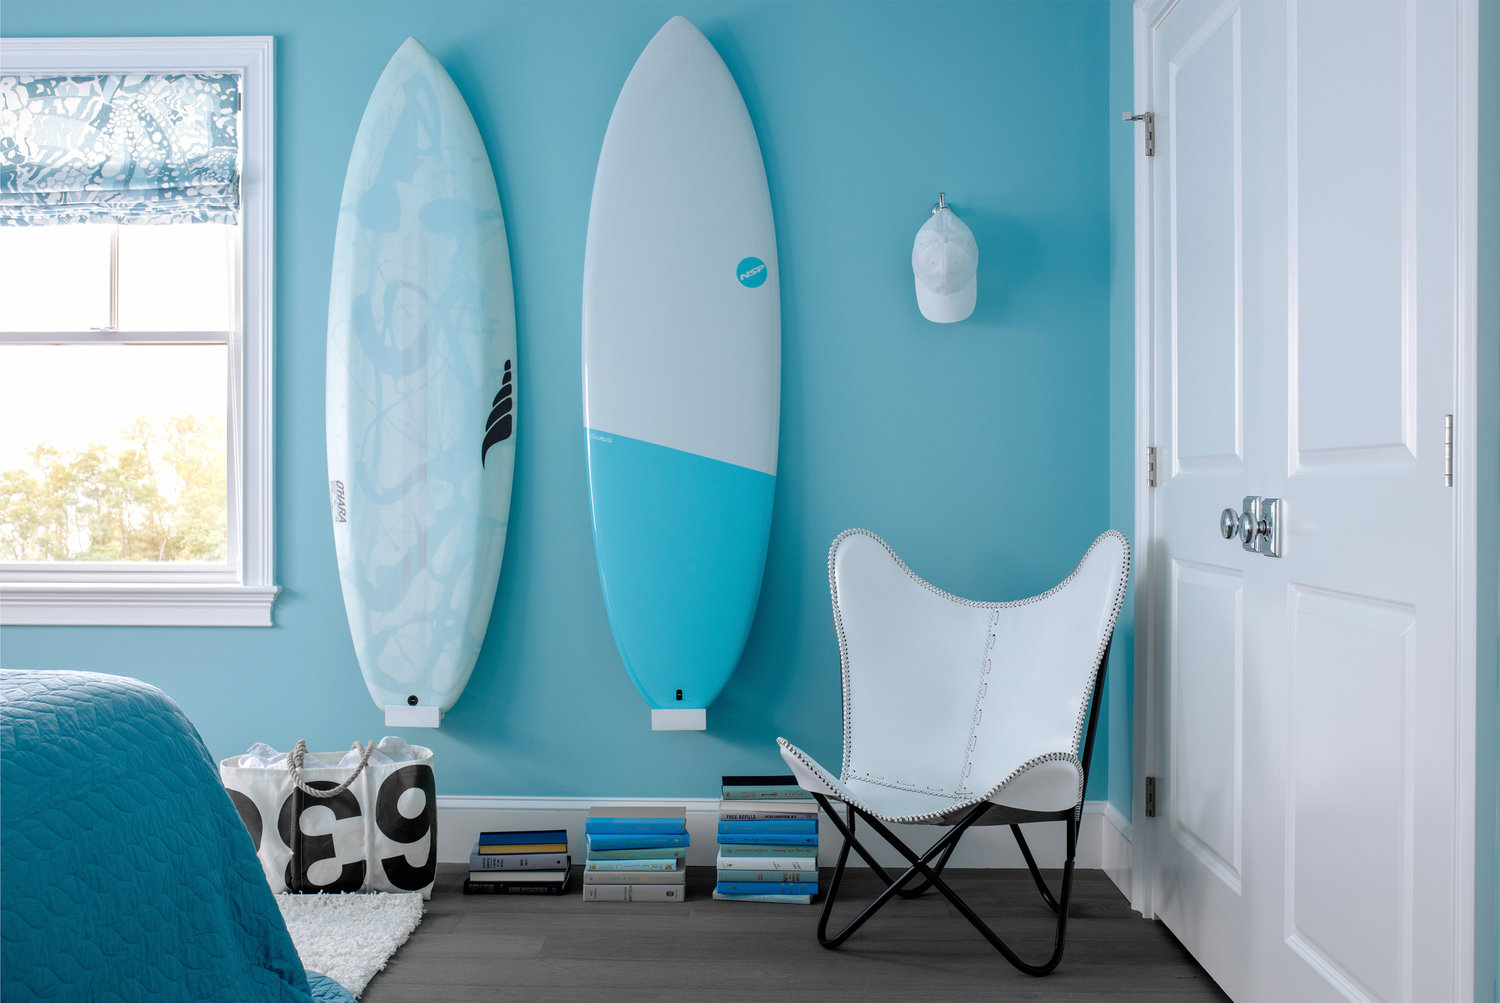 Ocean State surf culture was the inspo for the aqua guest bedroom, while accents in black and white keep the look grounded